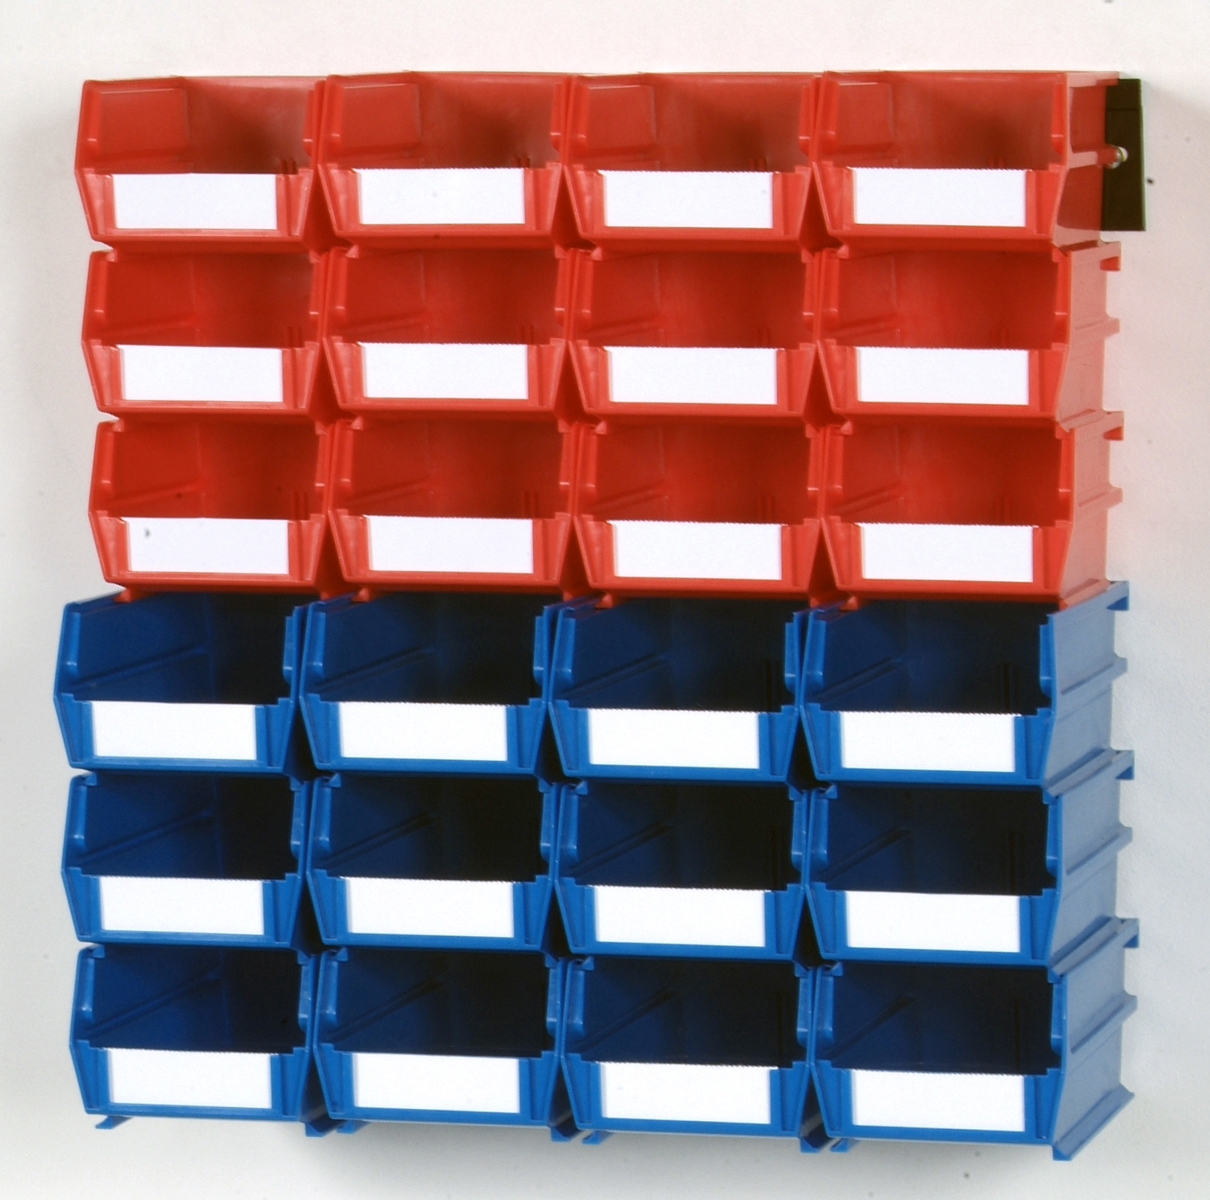 26 Pc Wall Storage Unit with (12) 5-3/8L x 4-1/8W x 3H Red Bins & (12) 7-3/8L x 4-1/8W x 3H Blue Bins, 24 CT, Wall Mount Rails